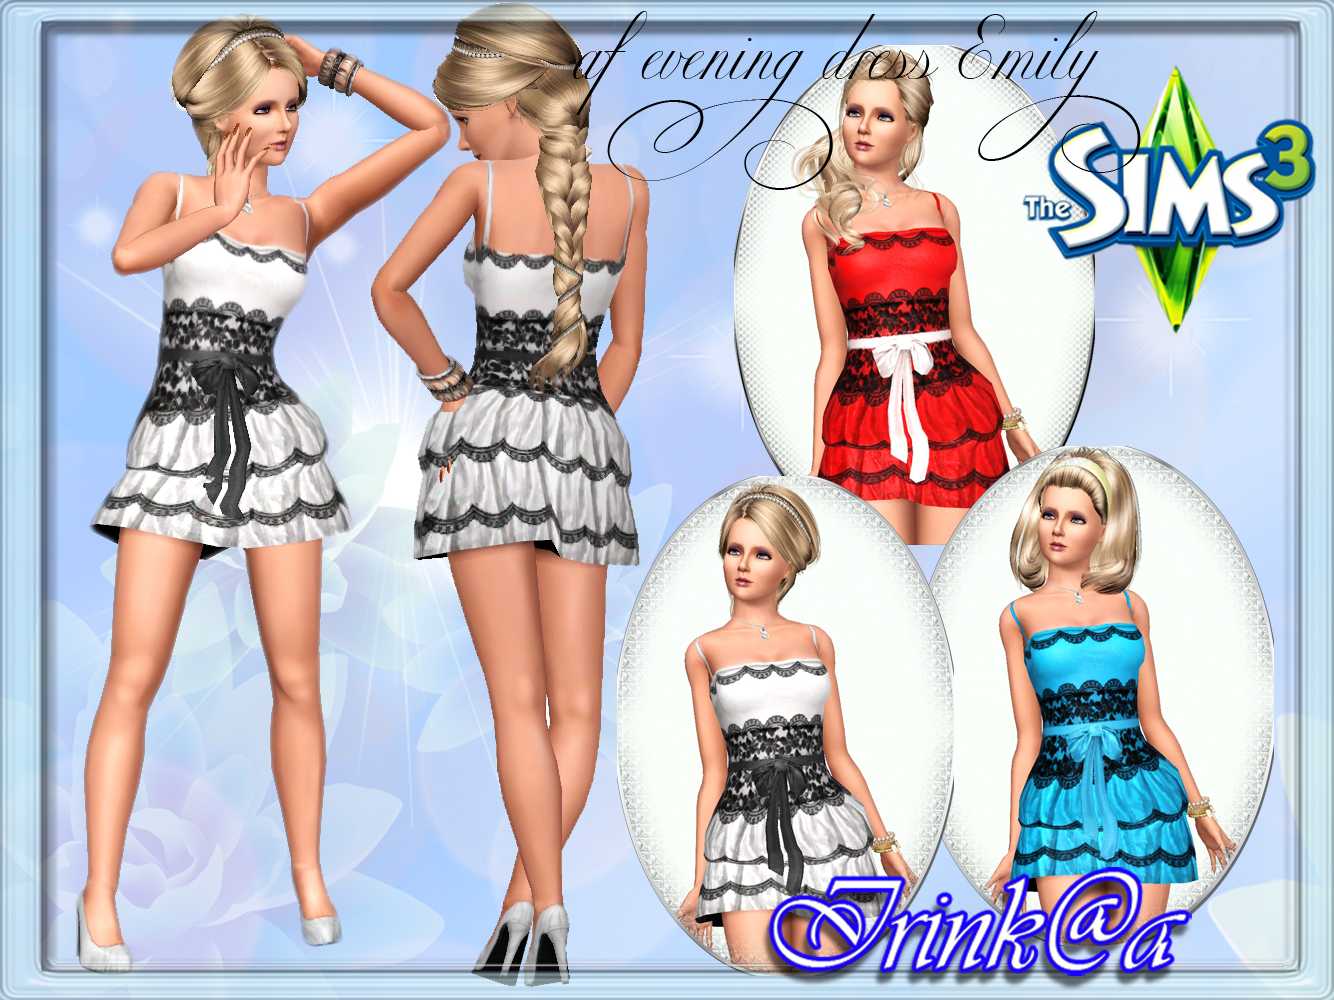 af dress Emily and shoes by Irink@a